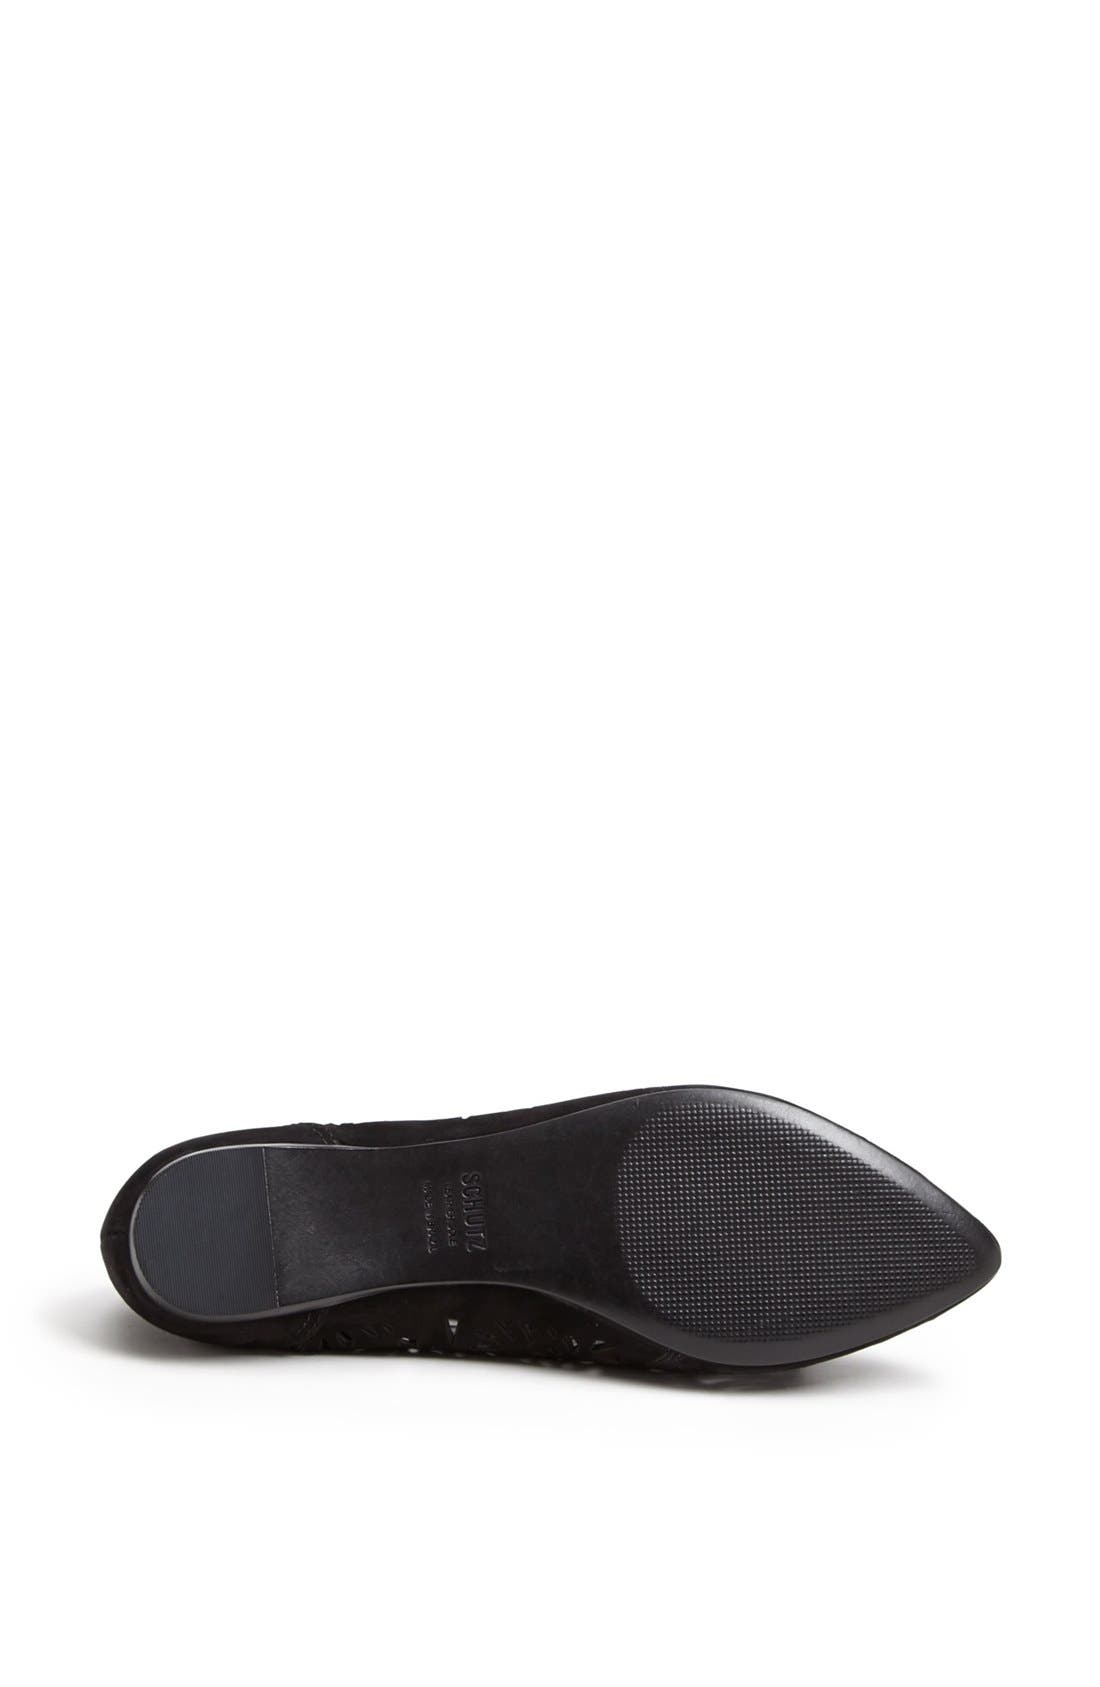 'Cicely' Perforated Flat,                             Alternate thumbnail 4, color,                             Black